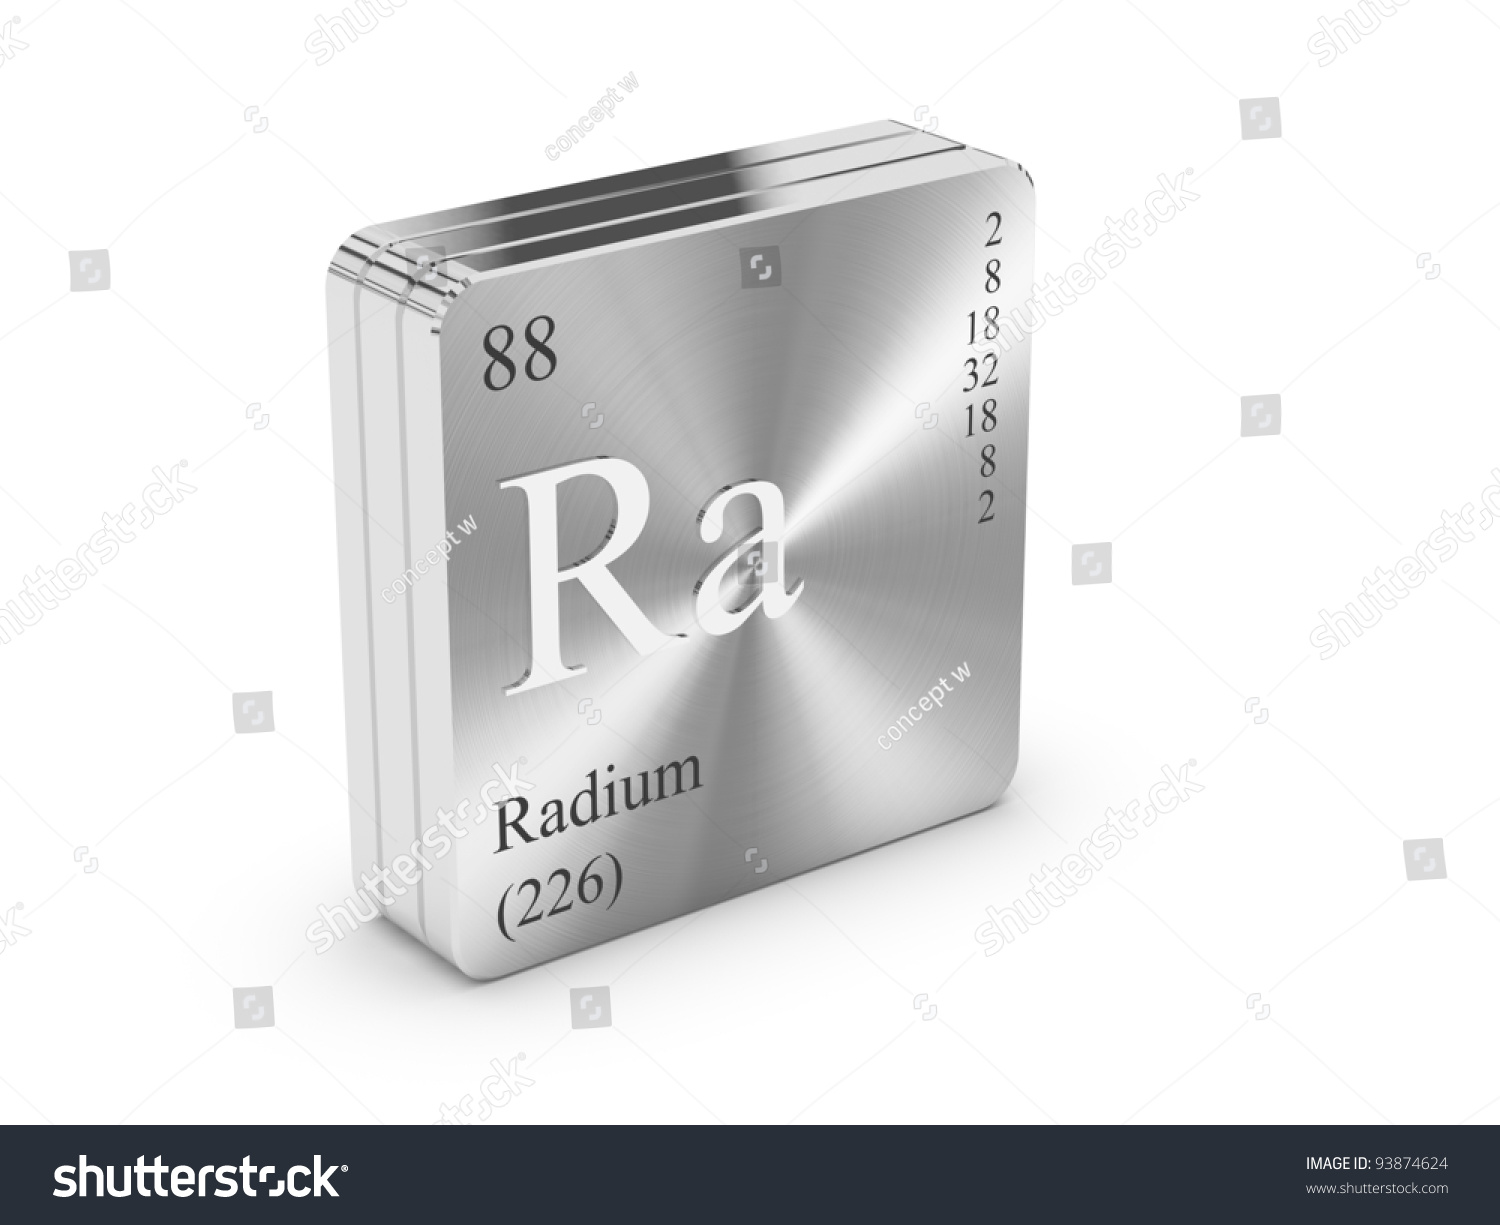 Radium element periodic table on metal stock illustration 93874624 radium element of the periodic table on metal steel block gamestrikefo Images